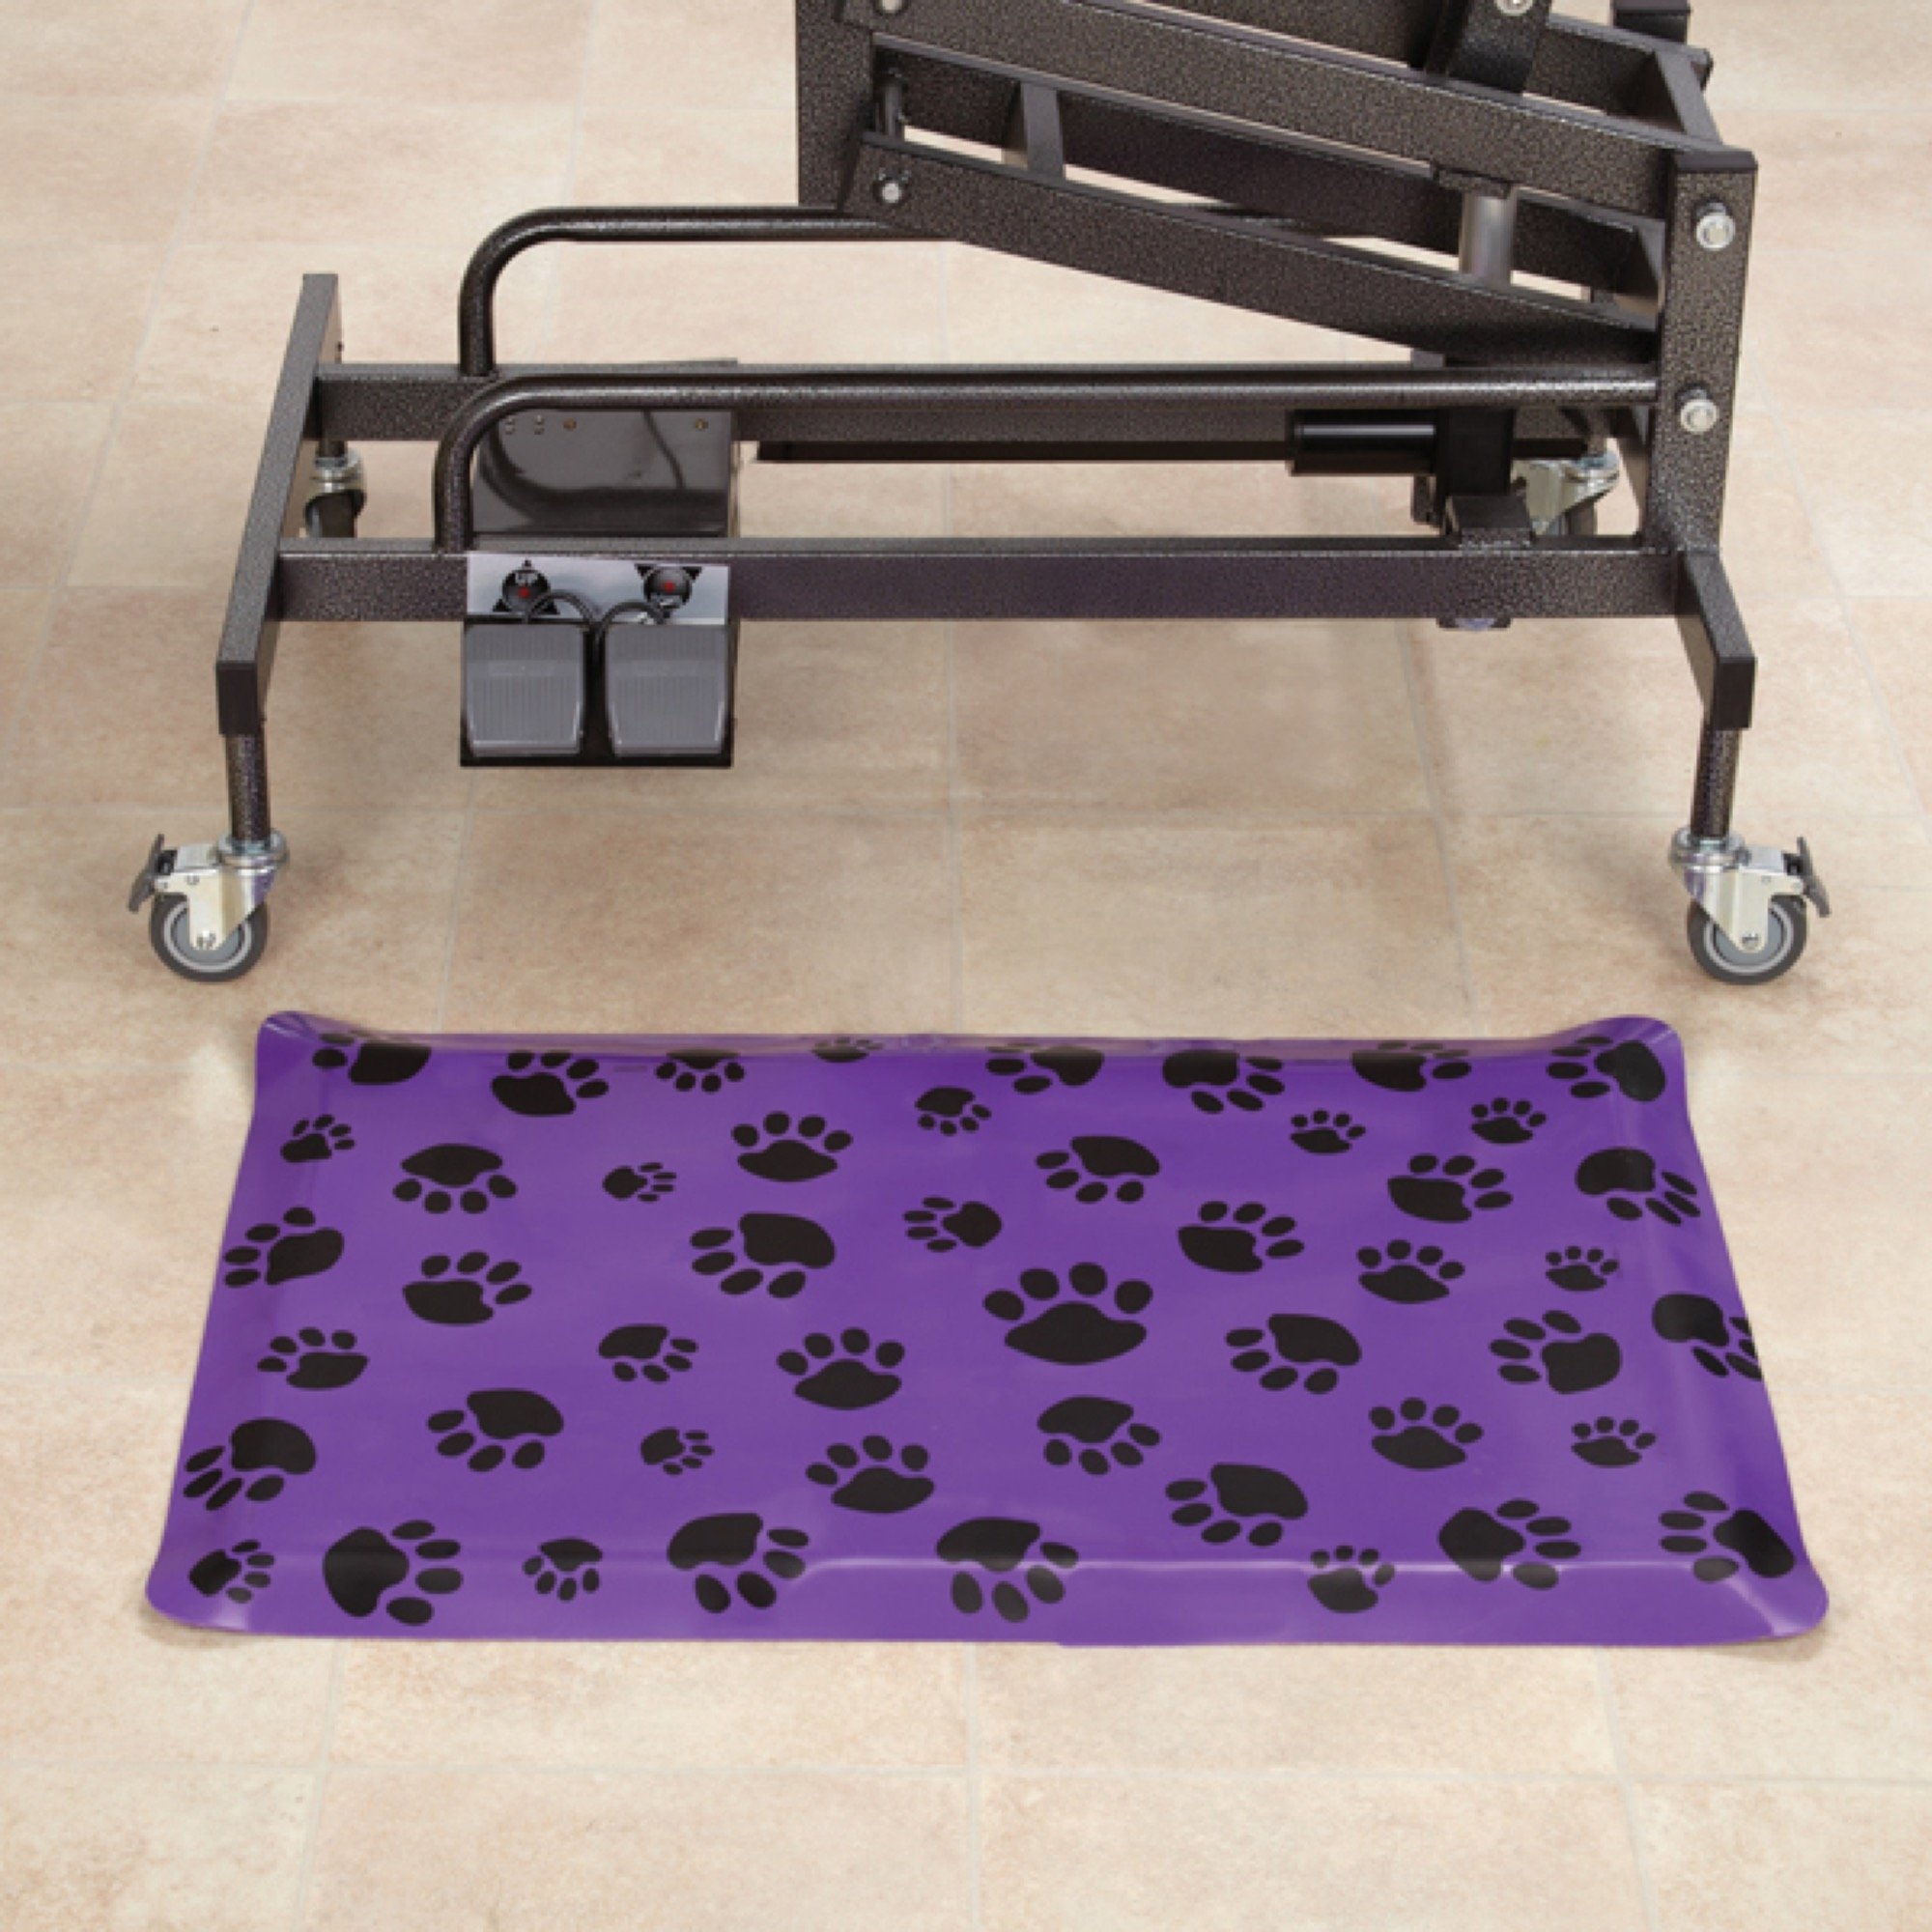 Top Performance  Anti-Fatigue Rectangular Floor Mats — Comfortable and Heavy-Duty PVC and Foam Mats for Professional Dog Groomers - 24'', Purple by Top Performance